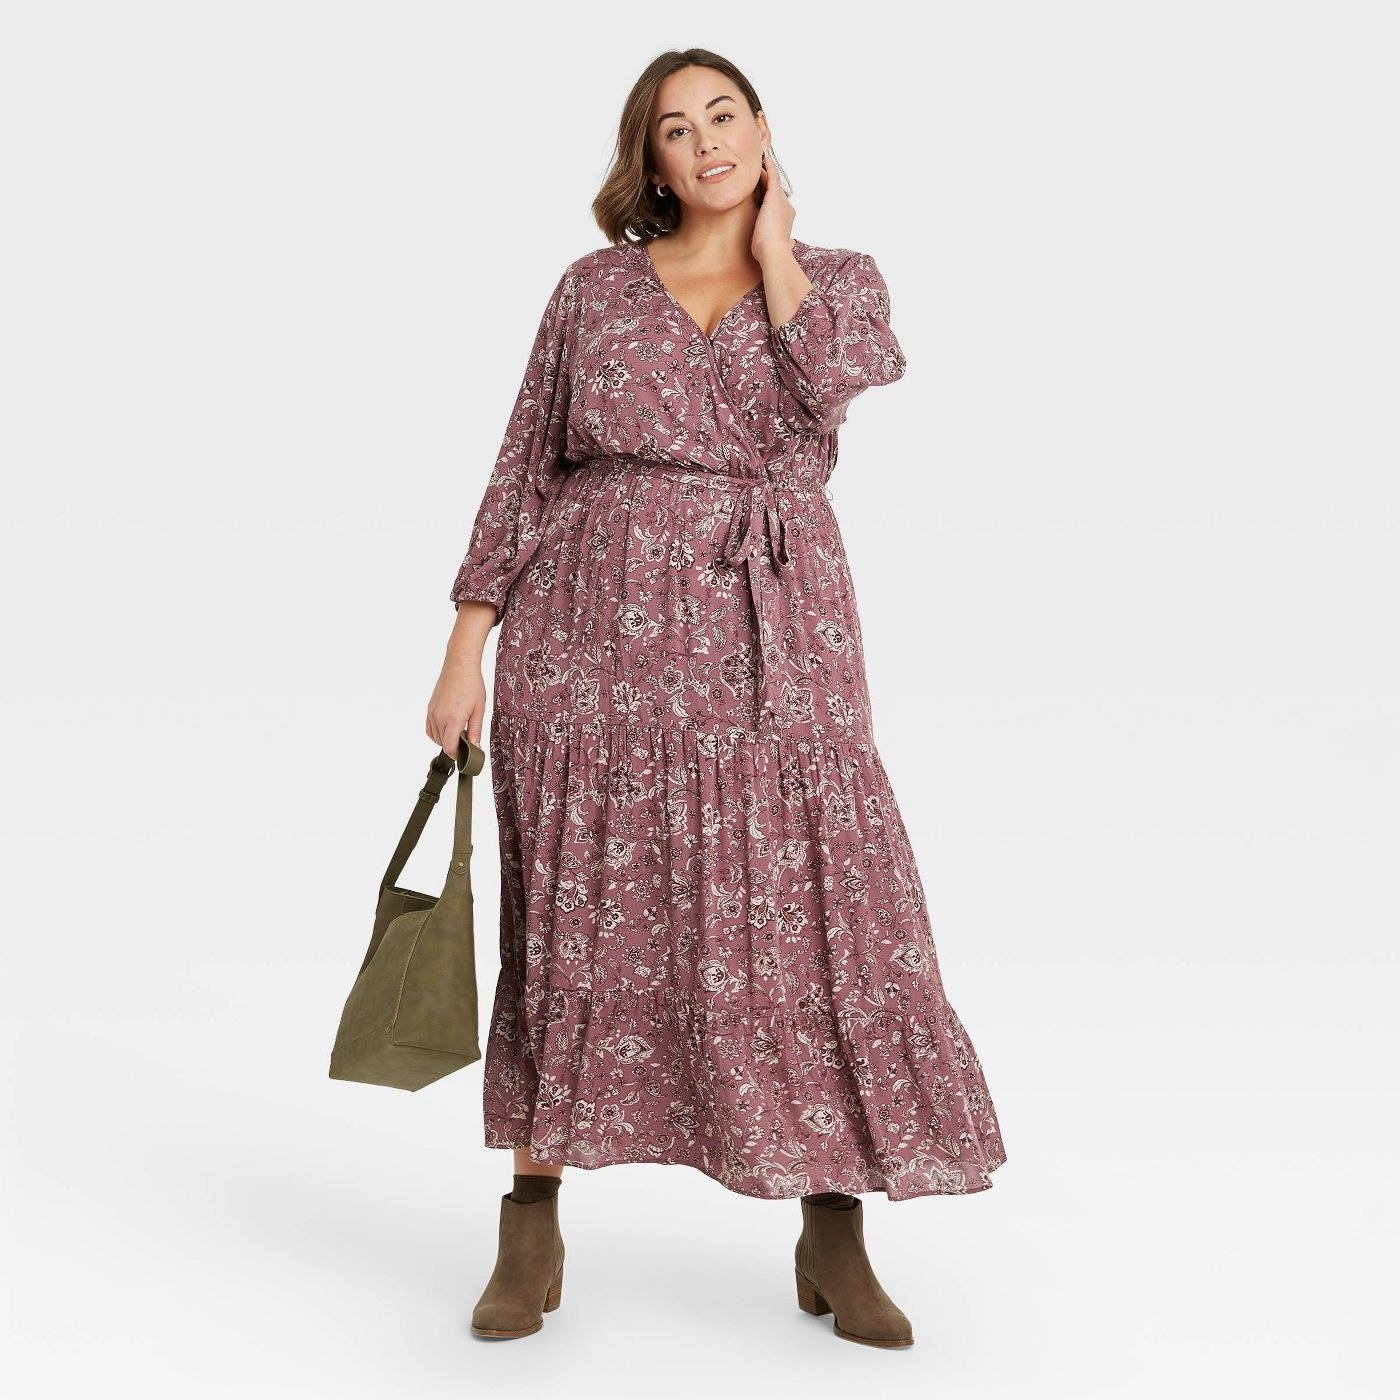 Model wearing dark lavender floral dress with hints of brown and white